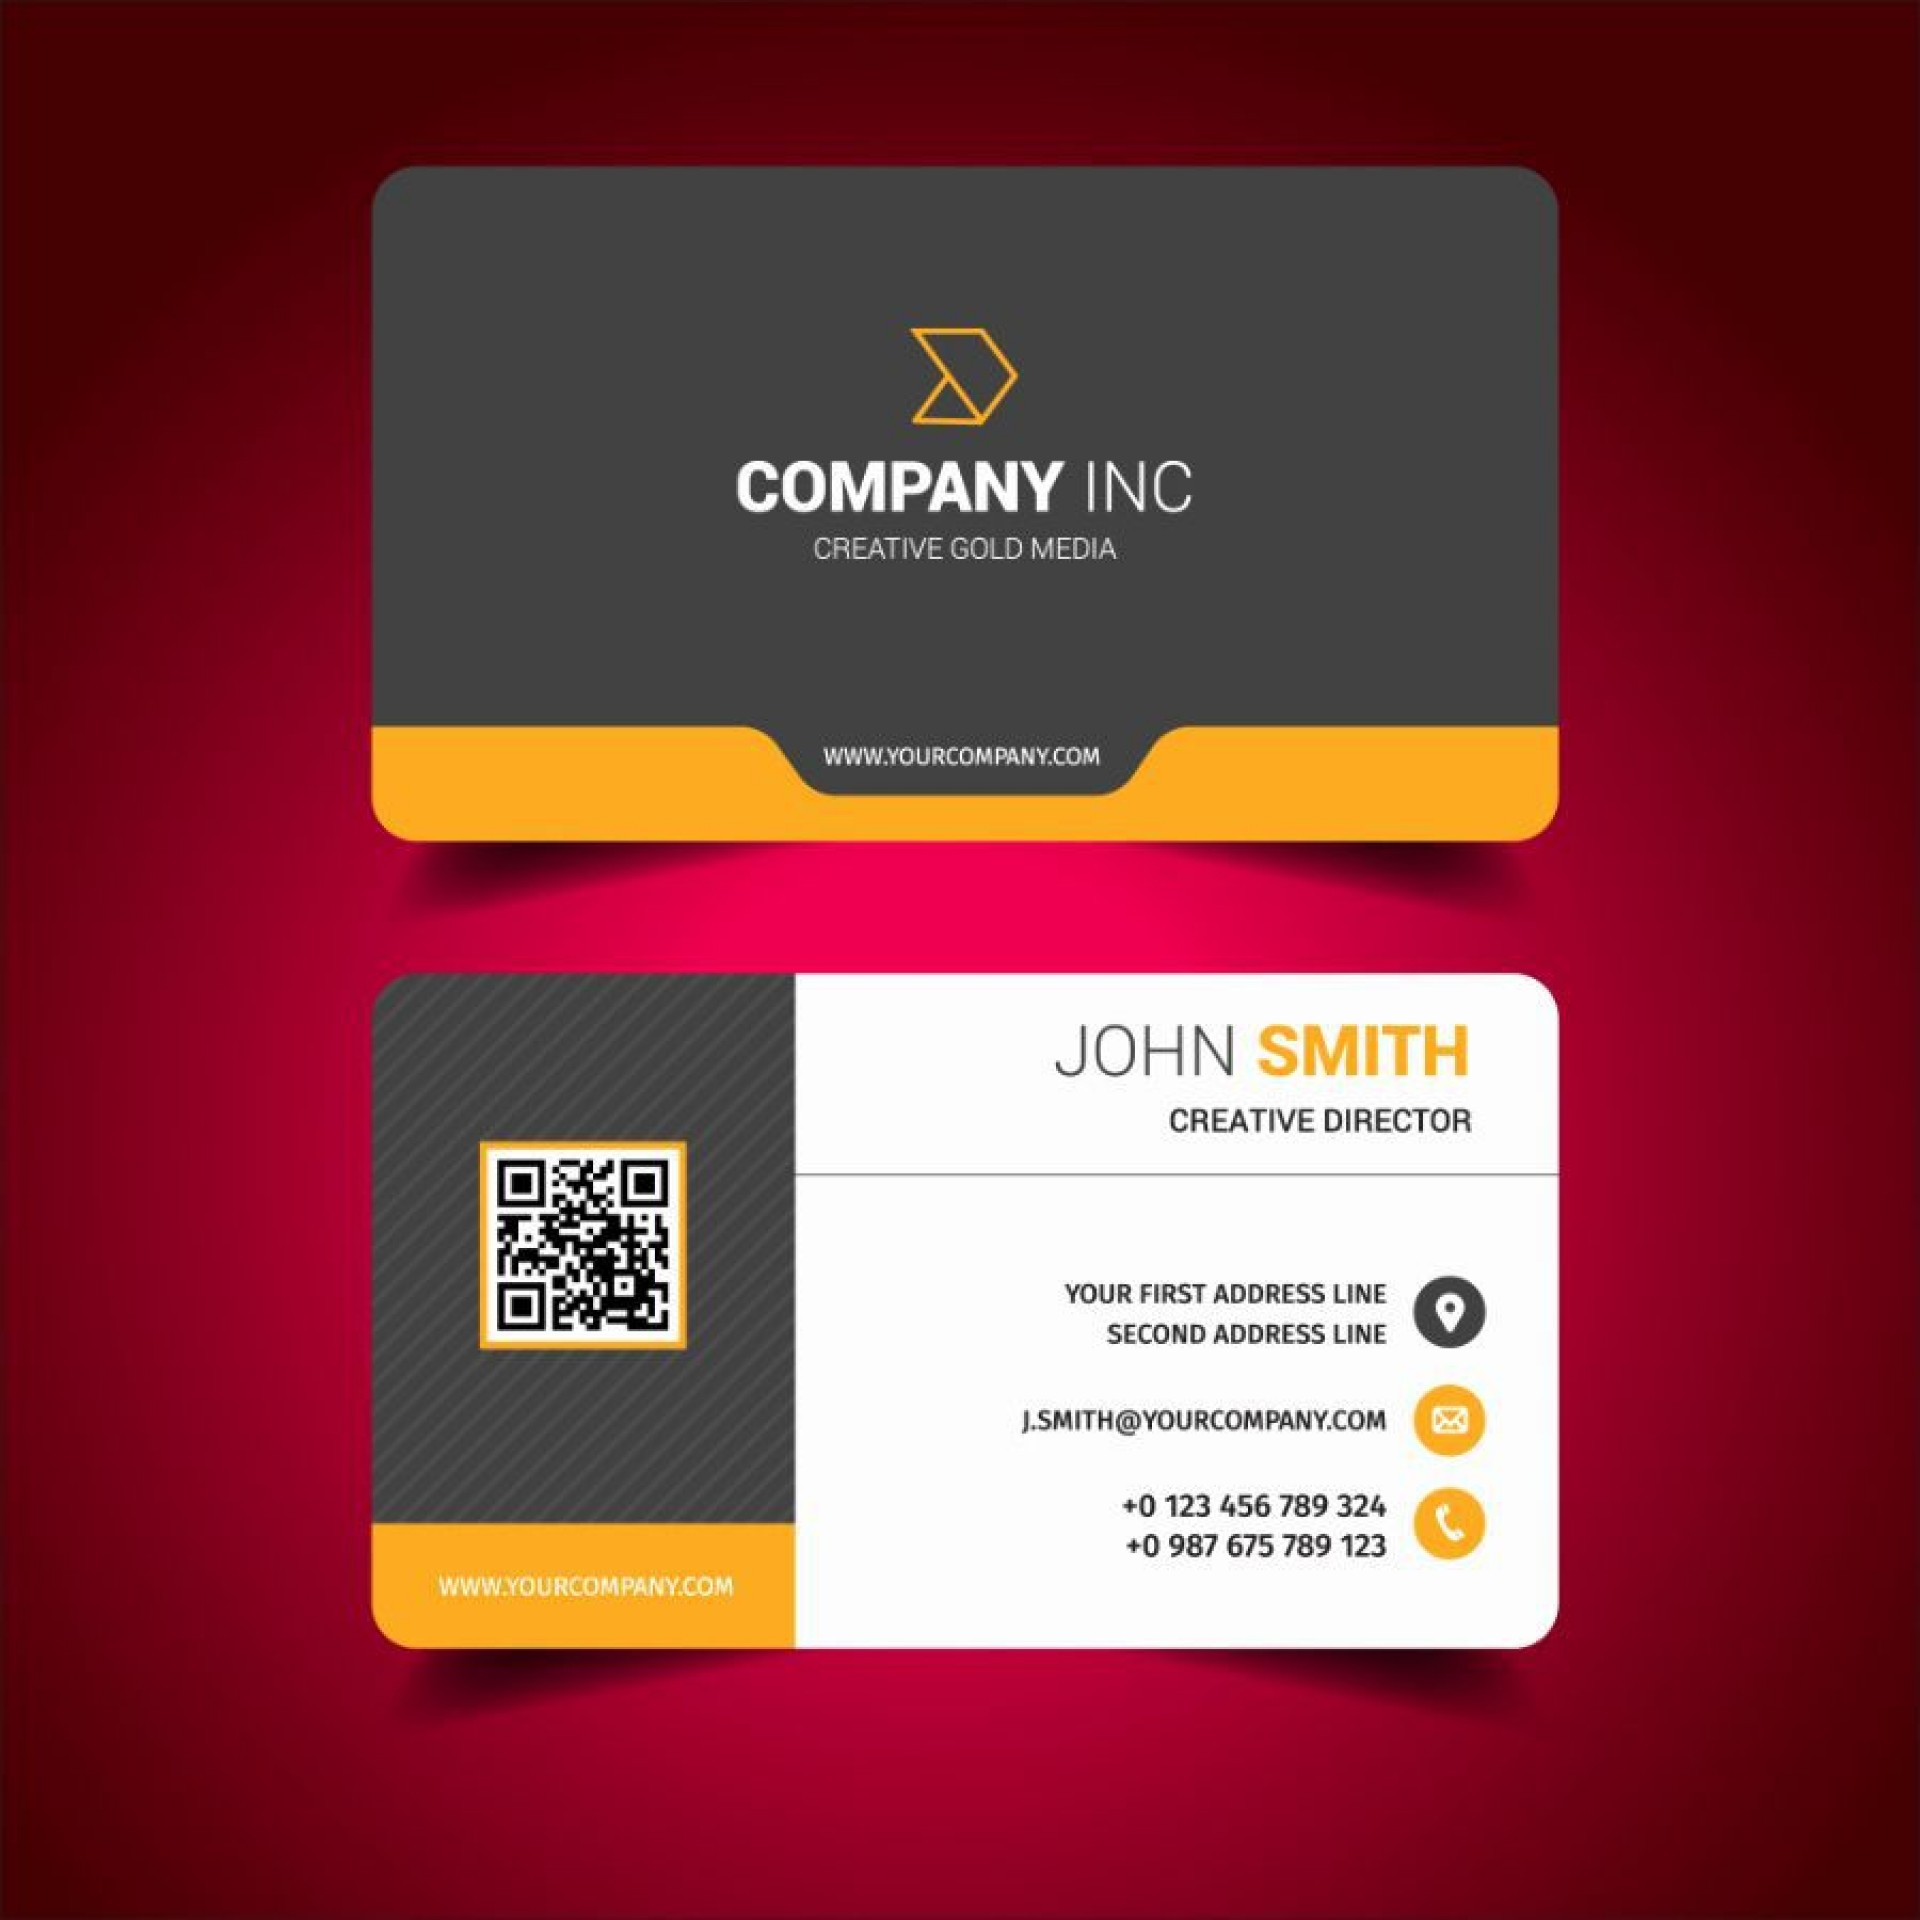 001 Exceptional Download Busines Card Template Concept  For Microsoft Publisher Adobe Illustrator Visiting Psd1920